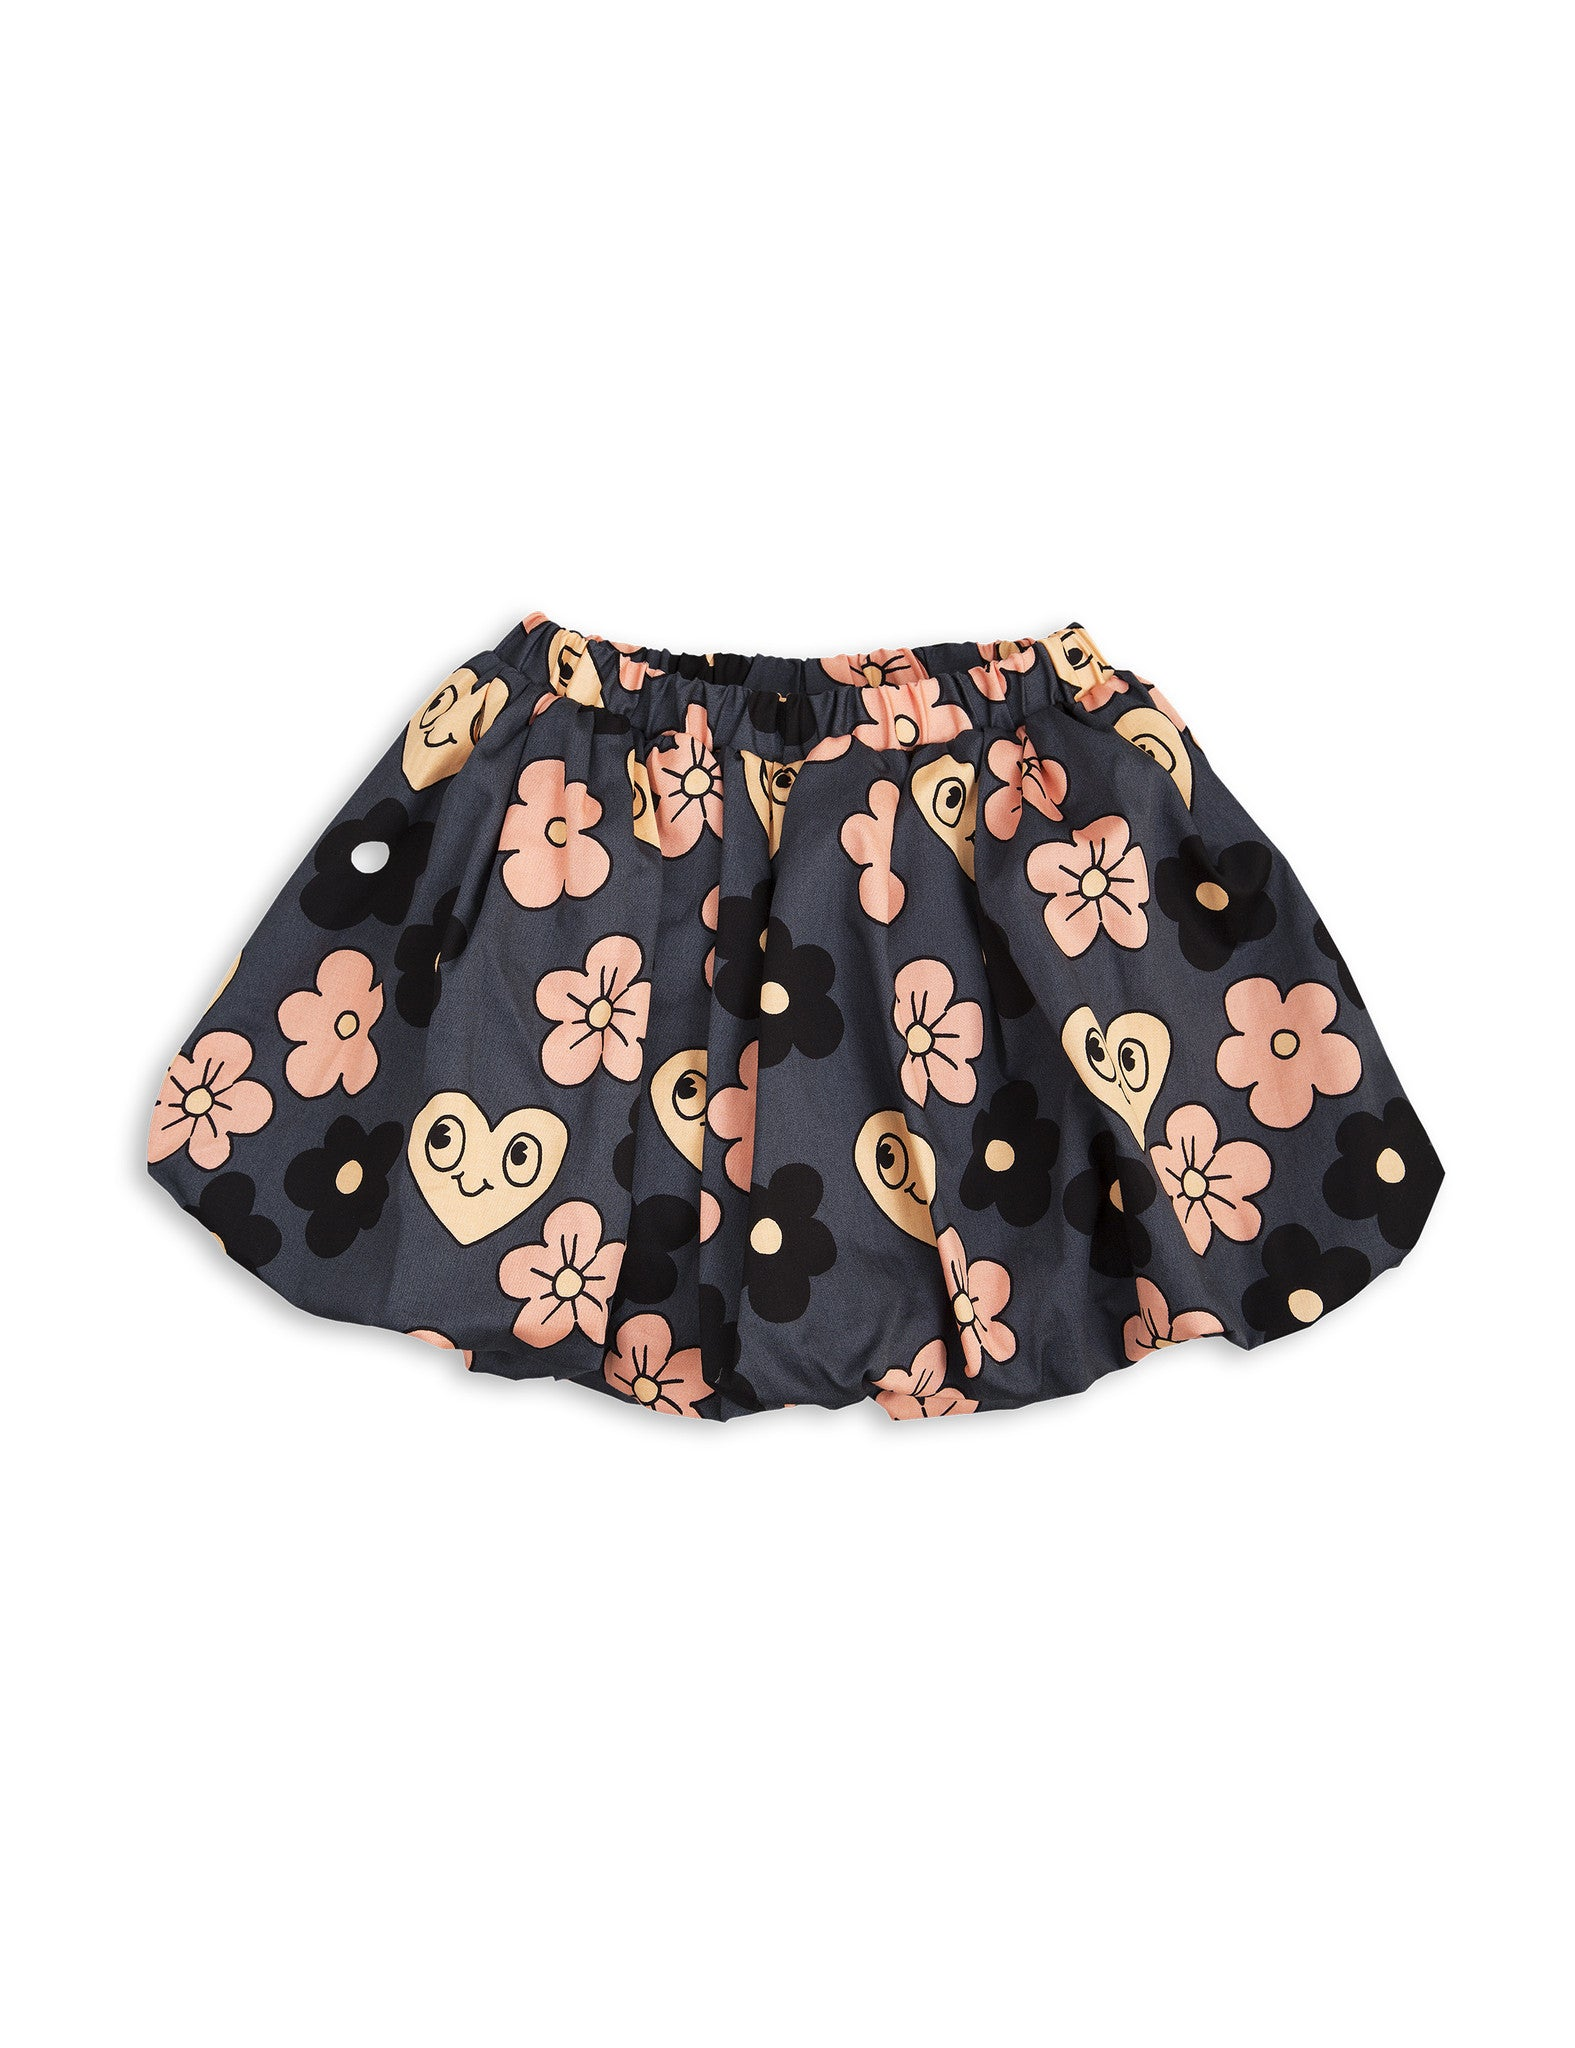 Rodini Flowers Skirt - Ladida